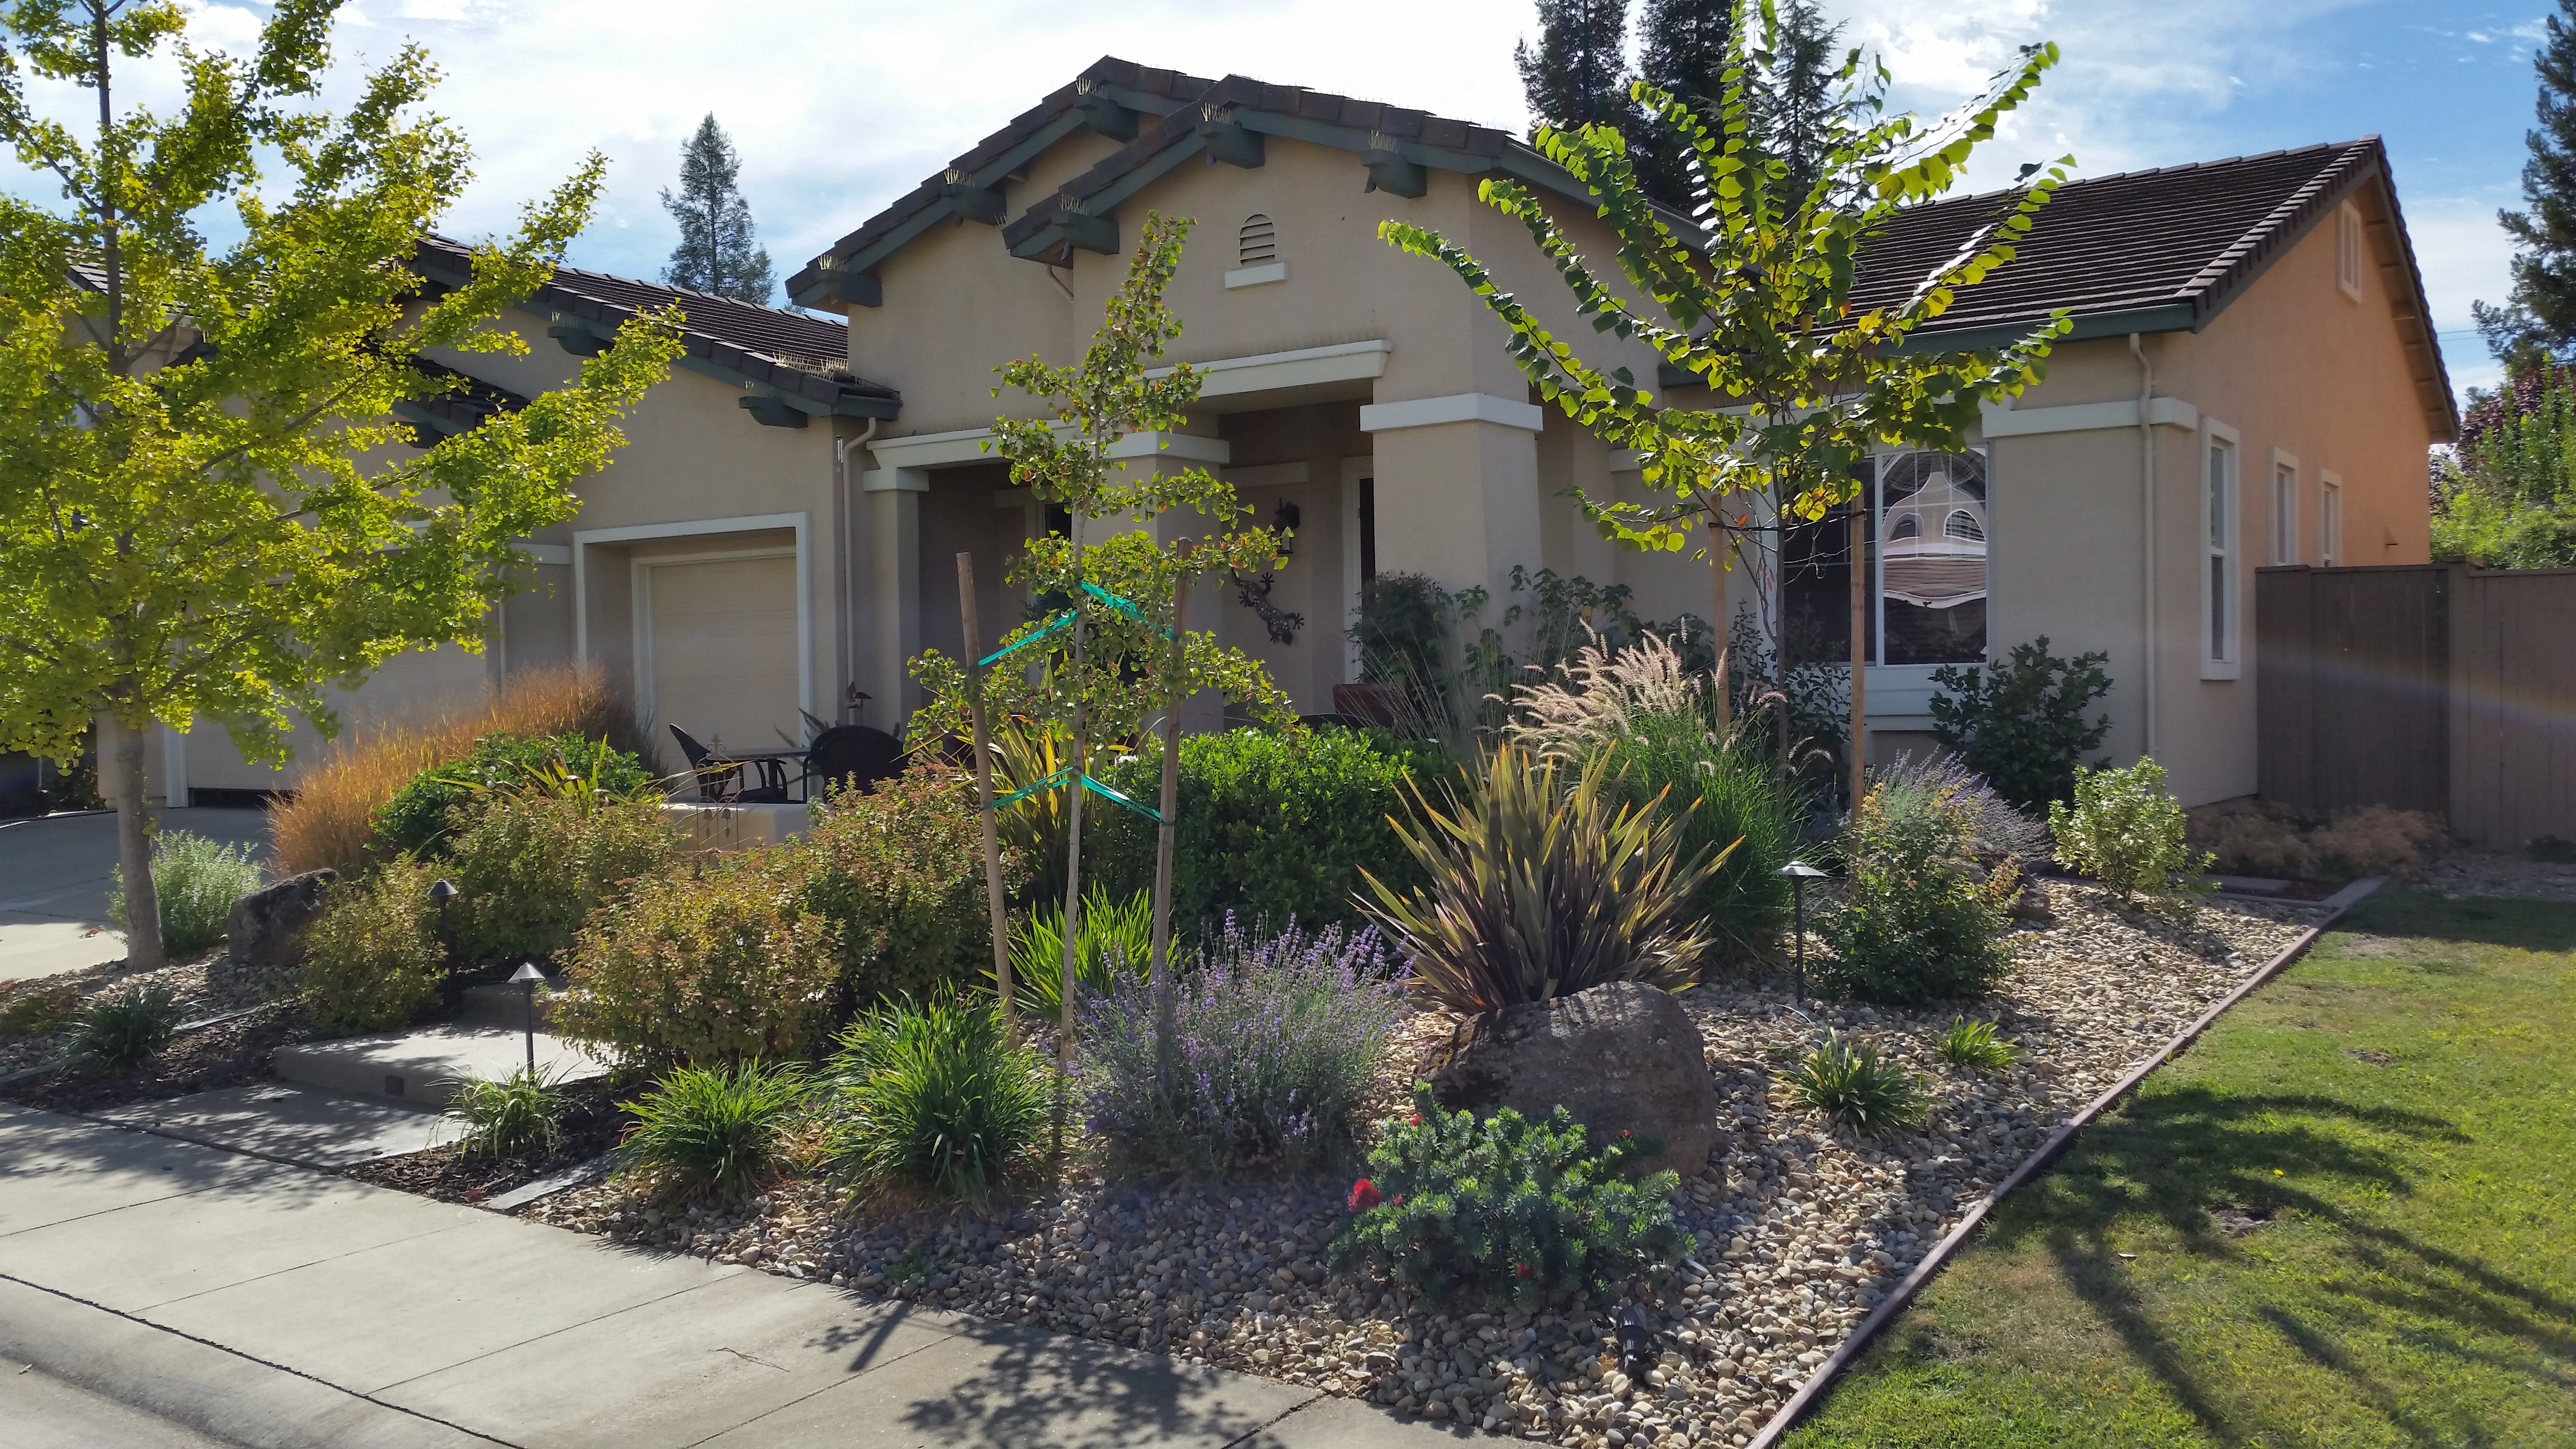 Ries Landscaping image 4